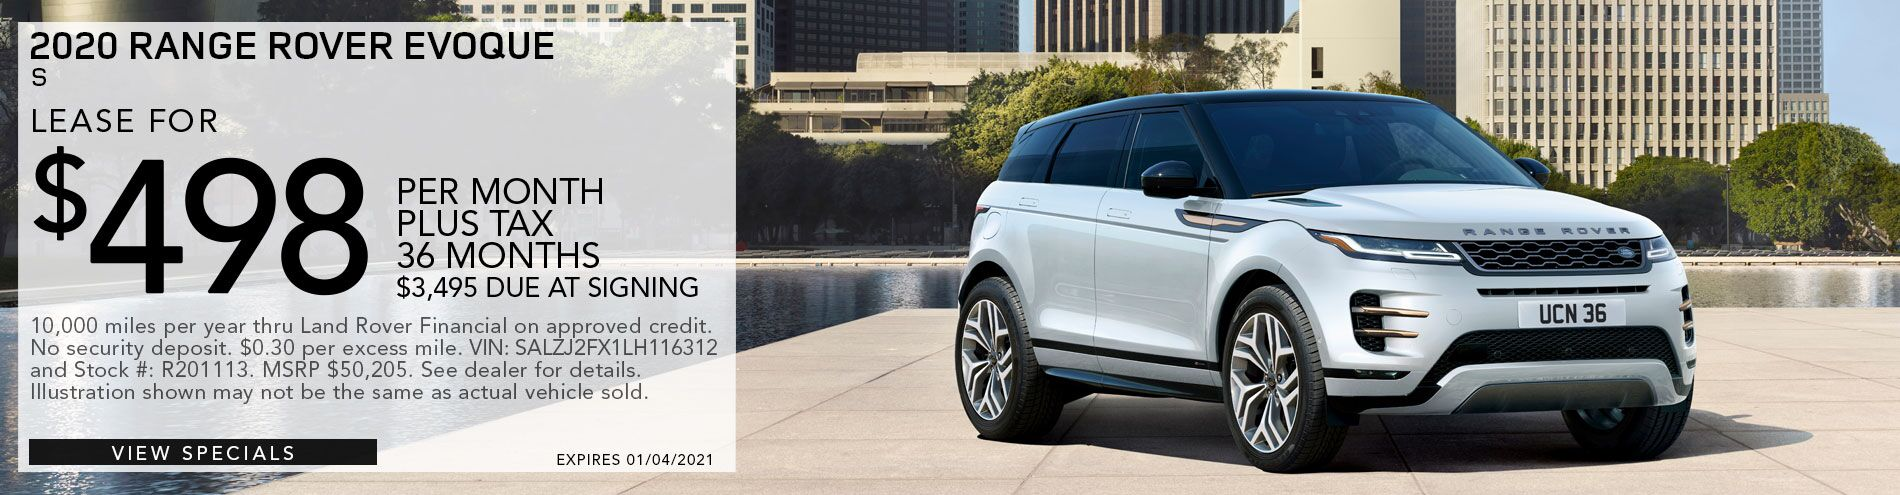 2020 Range Rover Evoque for sale only at Land Rover of Pasadena